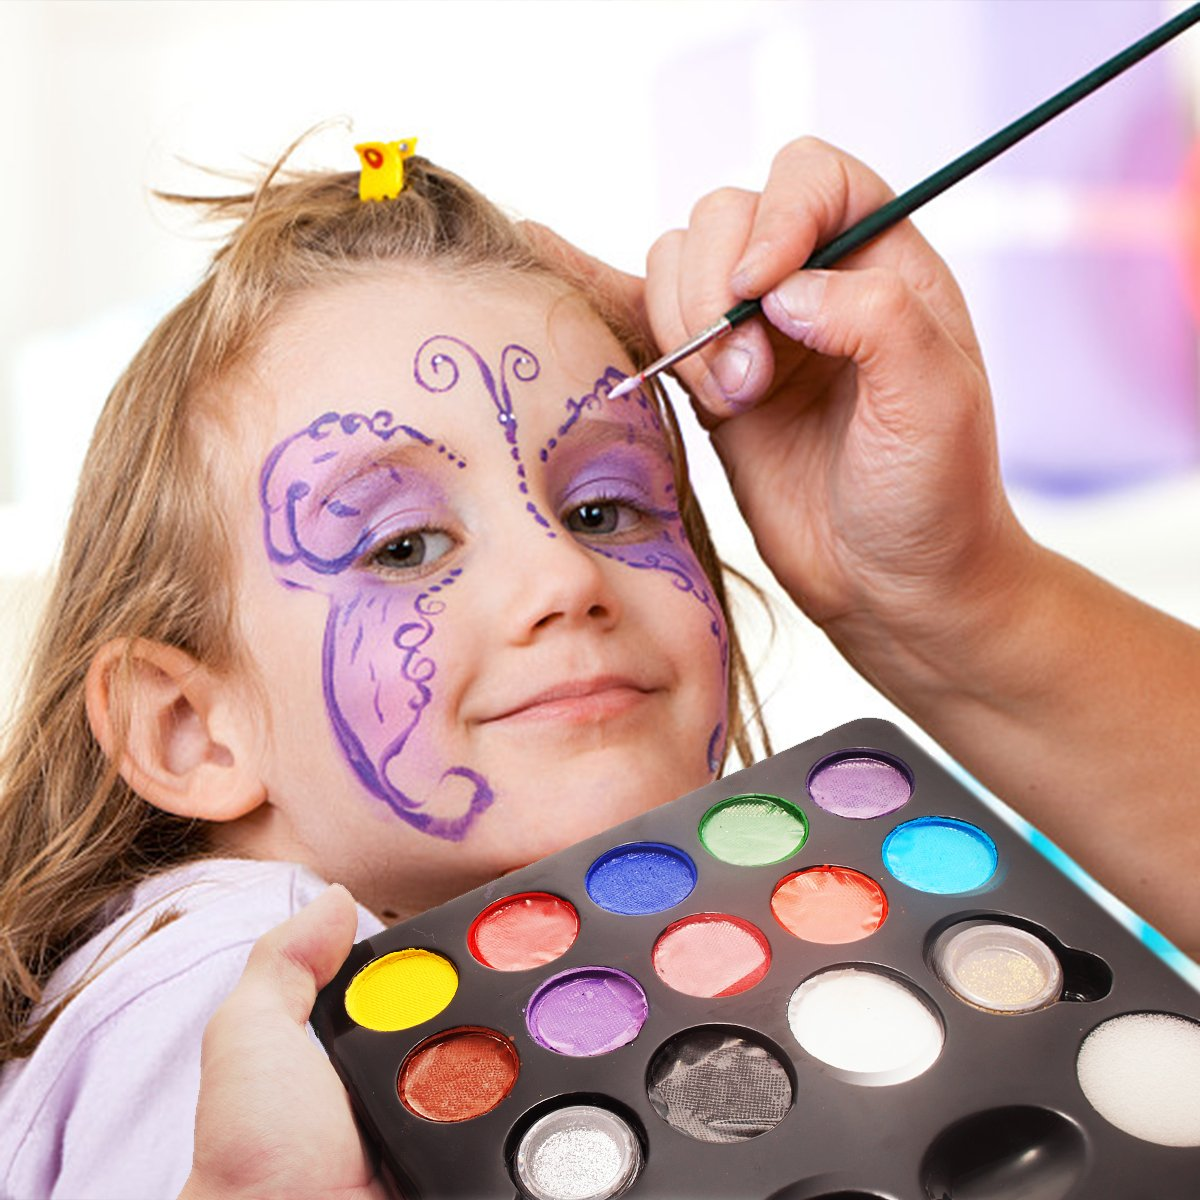 12 Schminkasten Schminkset, Schminkpalette mit 2 Glitzer und 3 Pinsel, Kinderschminken Profischmink für Kinder Tiermasken Körperfarben Halloween Karneval Make-up Bodypainting Facepainting Herenear JT009